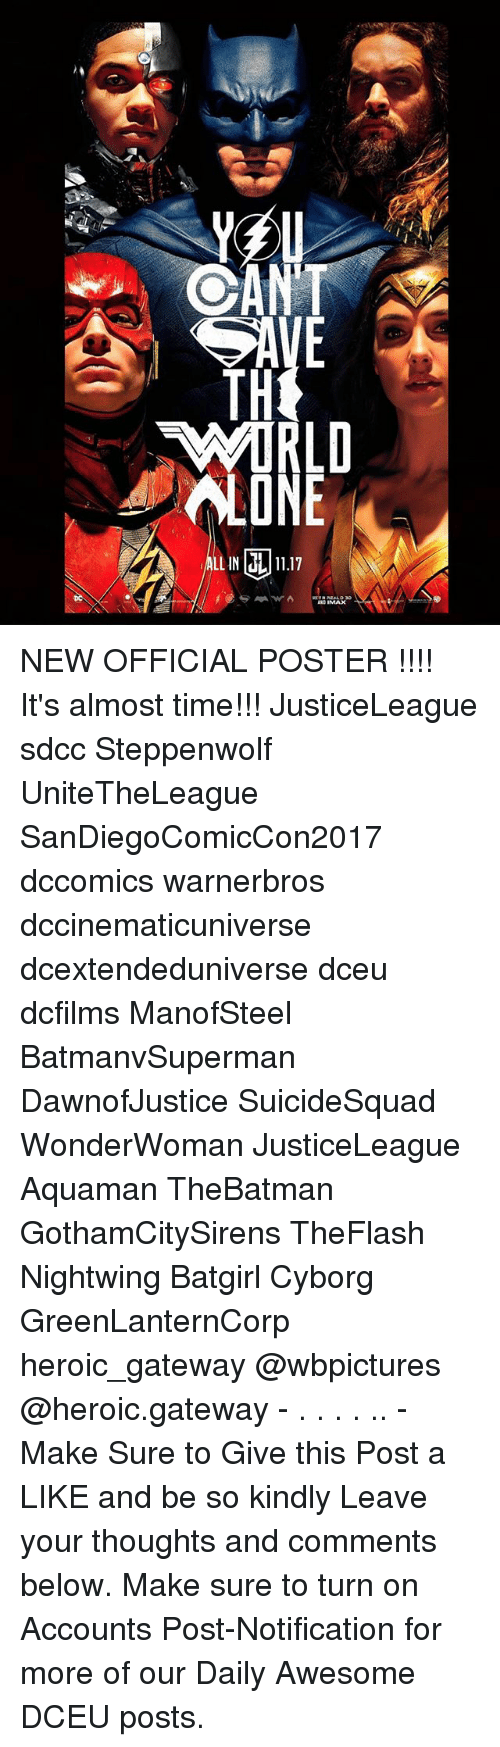 posterization: E LE NEW OFFICIAL POSTER !!!! It's almost time!!! JusticeLeague sdcc Steppenwolf UniteTheLeague SanDiegoComicCon2017 dccomics warnerbros dccinematicuniverse dcextendeduniverse dceu dcfilms ManofSteel BatmanvSuperman DawnofJustice SuicideSquad WonderWoman JusticeLeague Aquaman TheBatman GothamCitySirens TheFlash Nightwing Batgirl Cyborg GreenLanternCorp heroic_gateway @wbpictures @heroic.gateway - . . . . .. -Make Sure to Give this Post a LIKE and be so kindly Leave your thoughts and comments below. Make sure to turn on Accounts Post-Notification for more of our Daily Awesome DCEU posts.